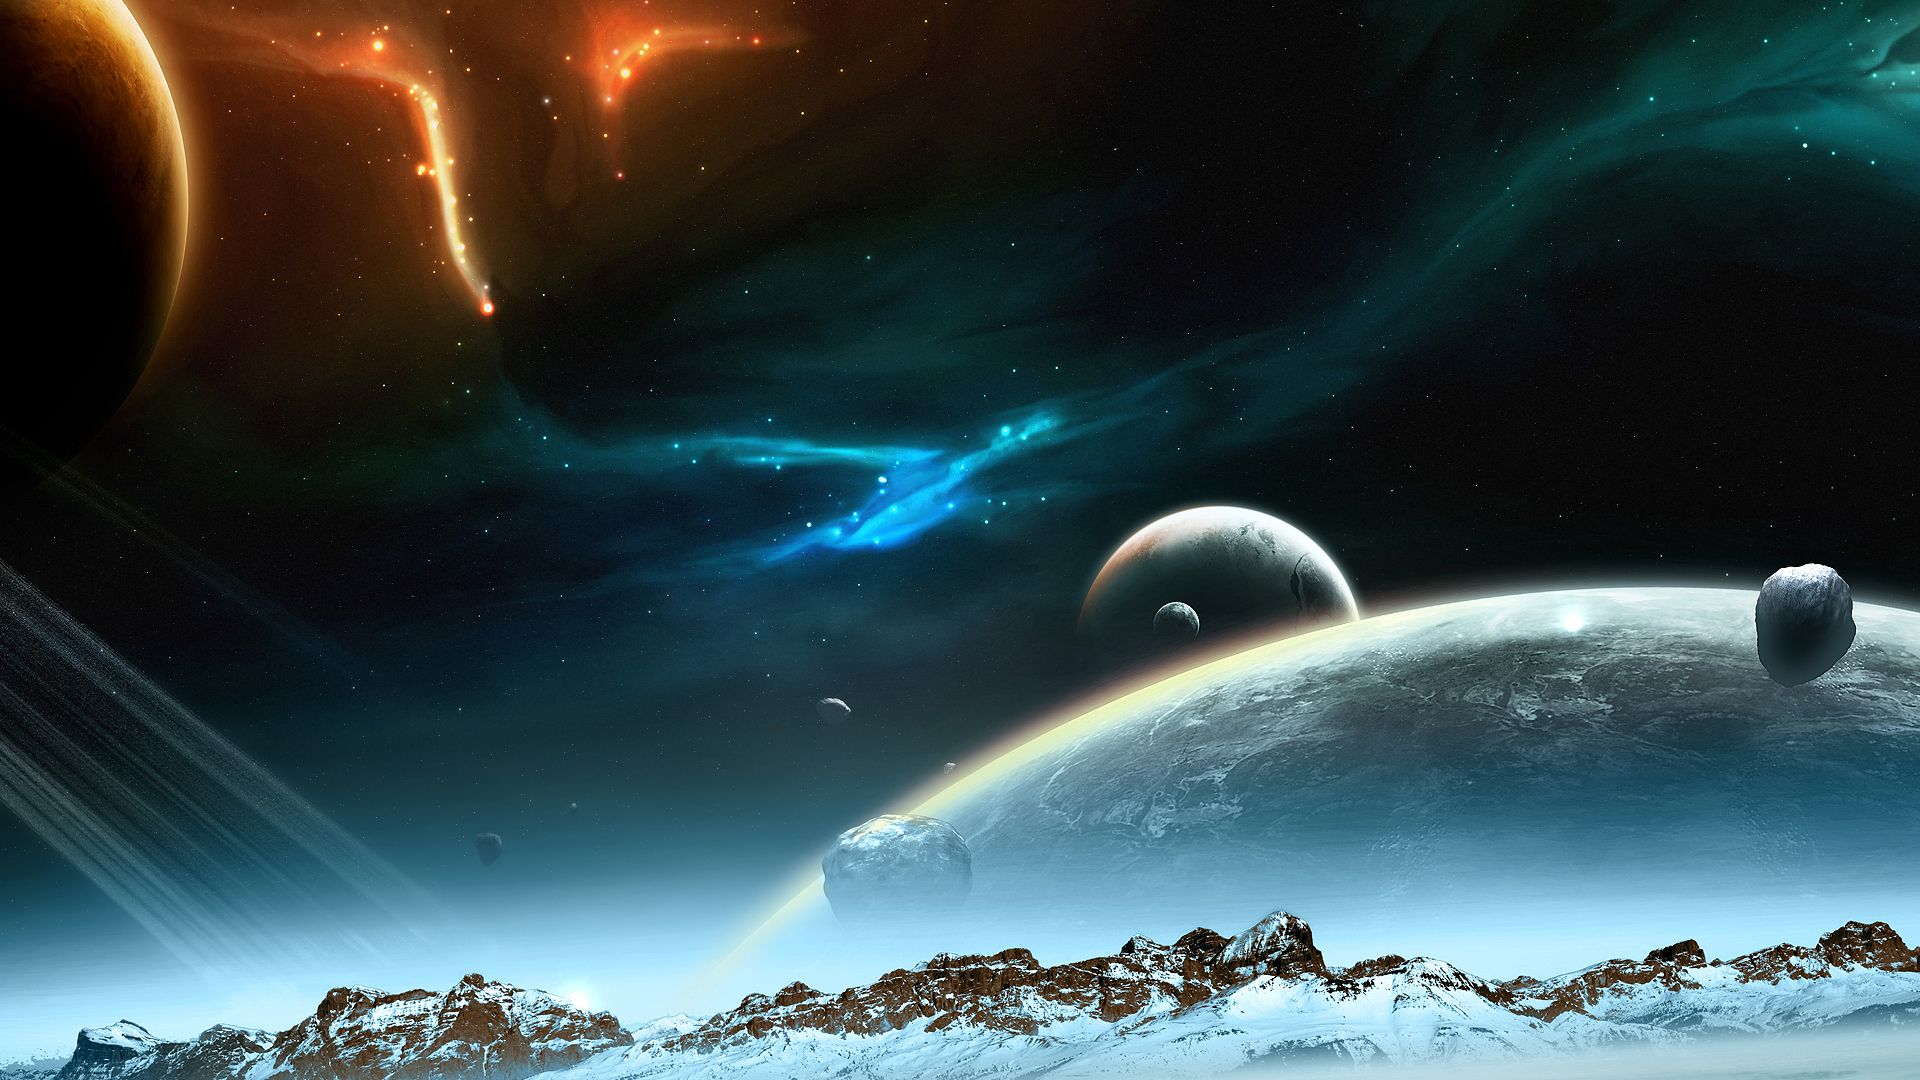 Space Themed PC Wallpaper